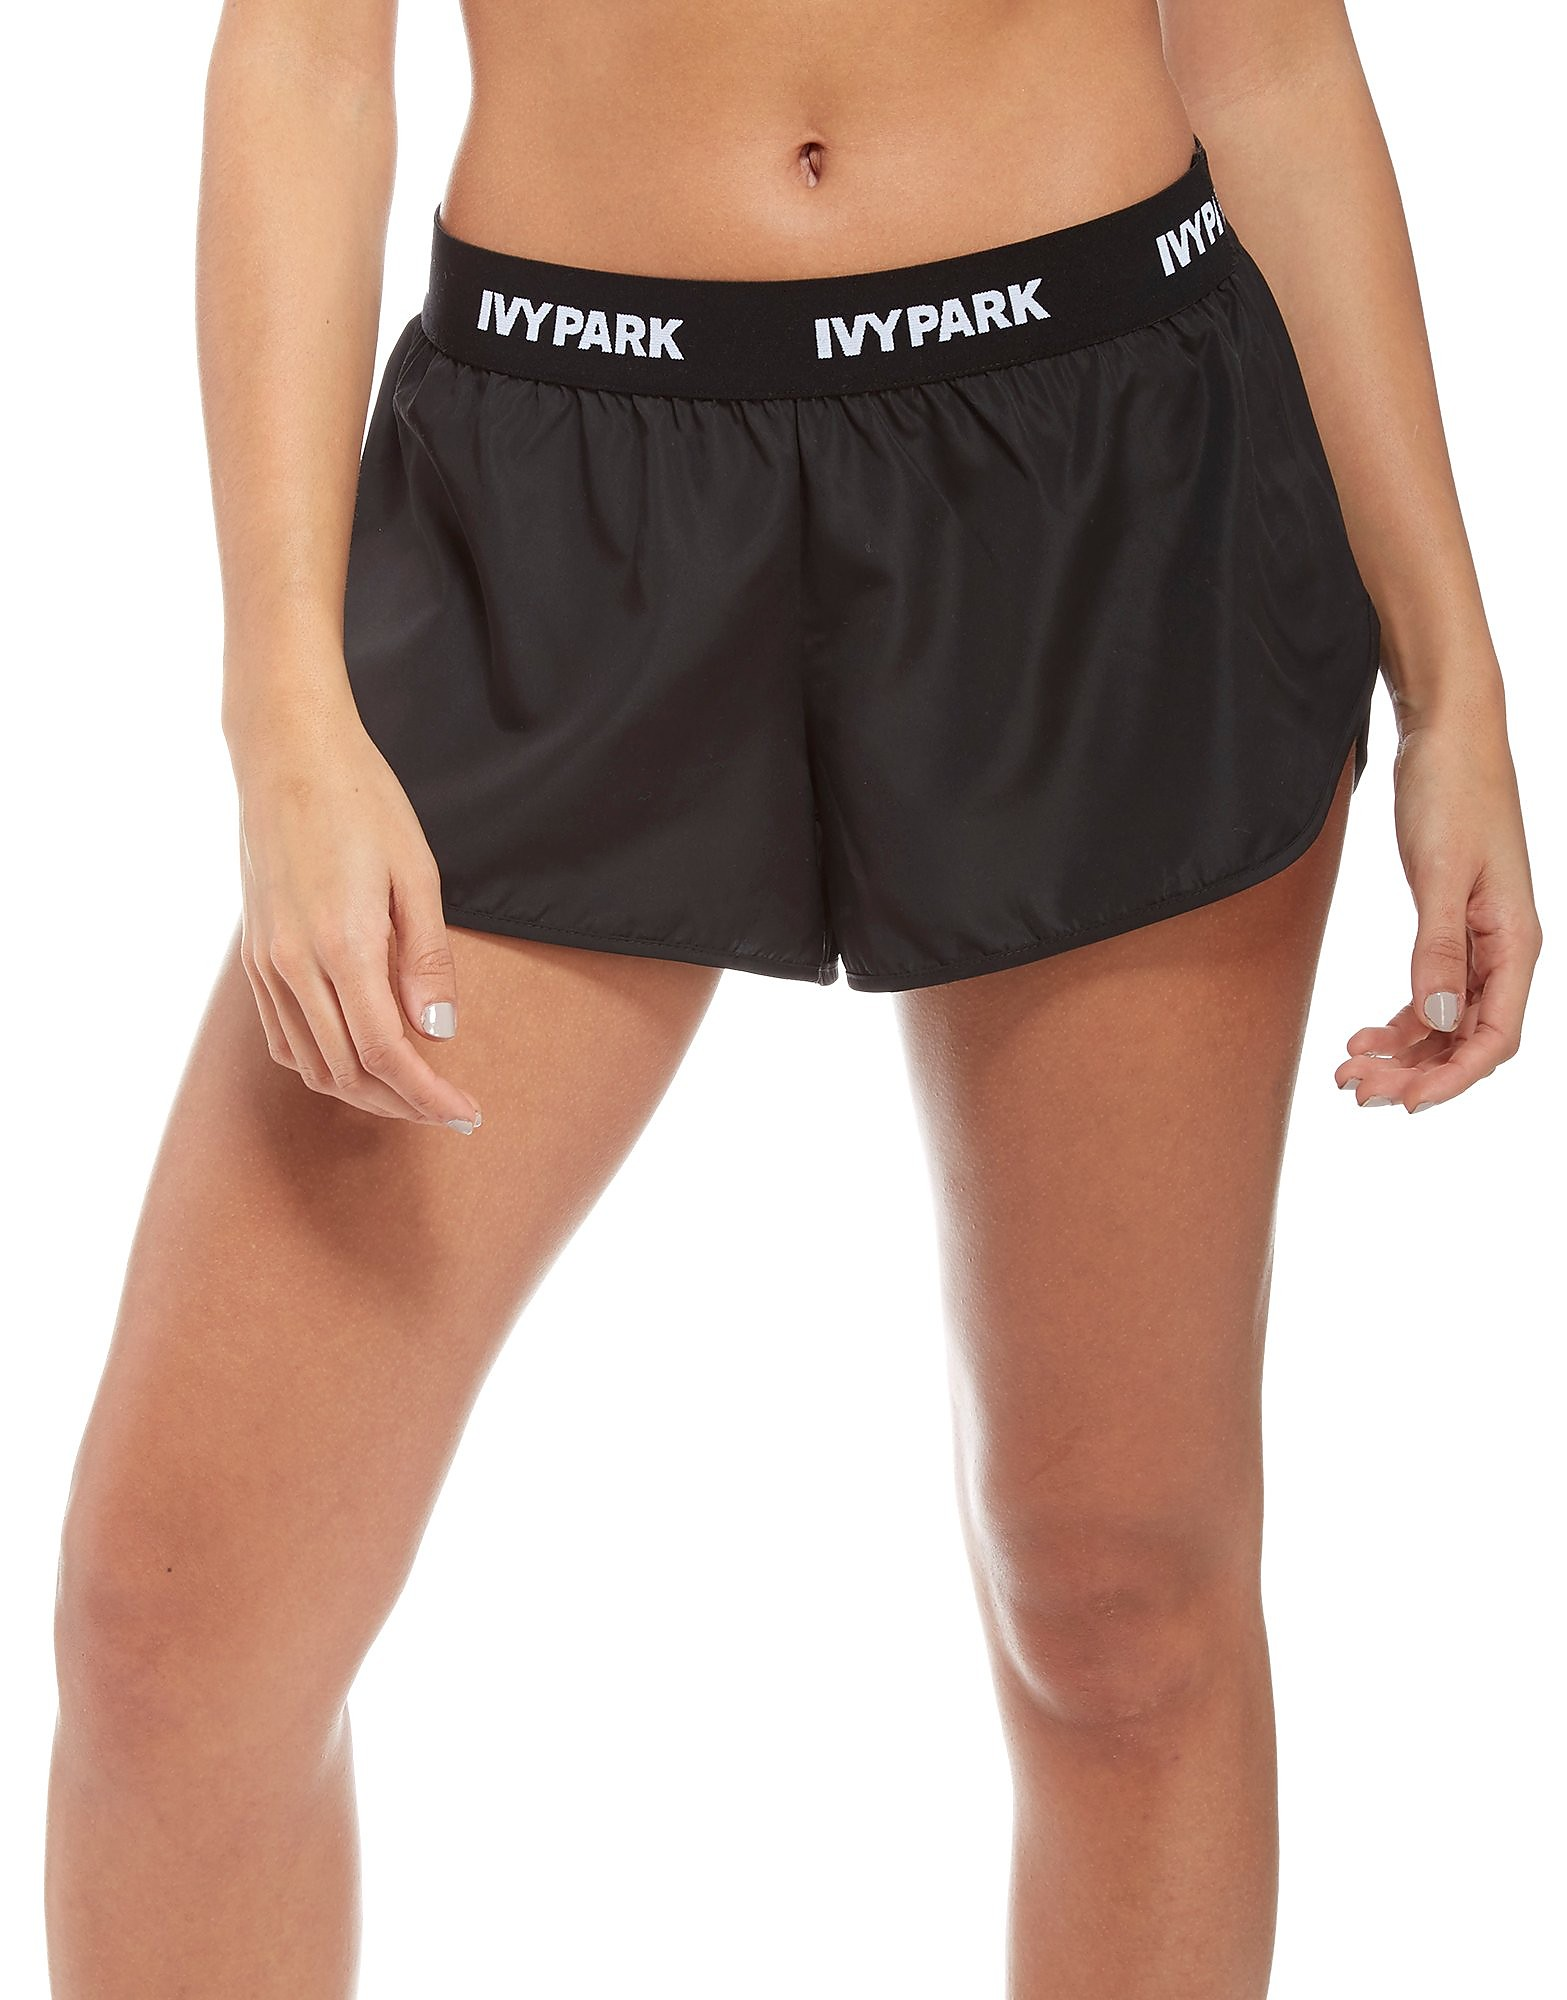 IVY PARK Waistband Runner Shorts